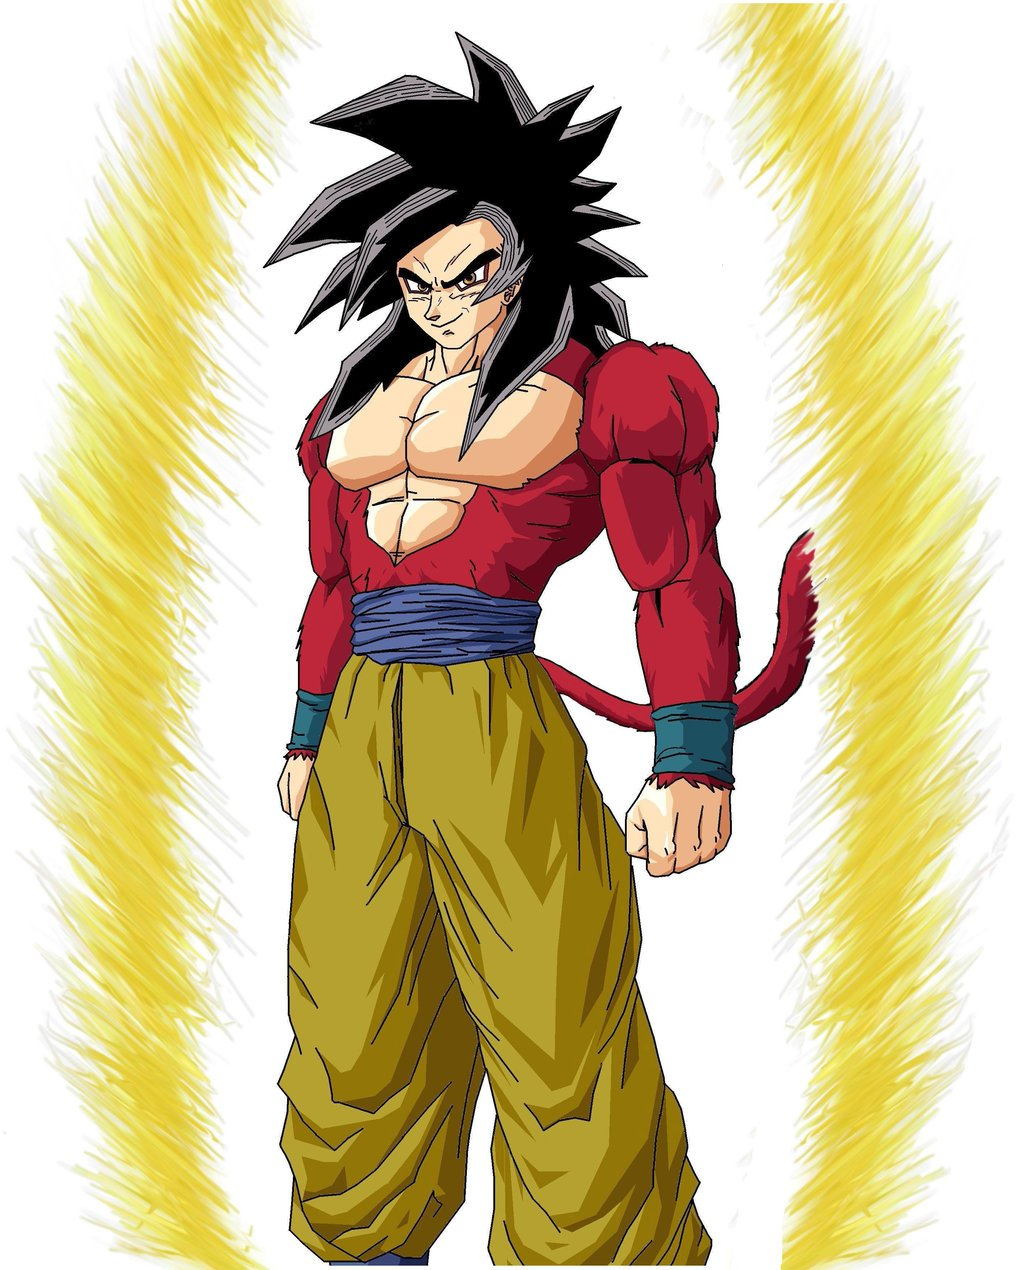 47 Goku Super Saiyan 4 Wallpaper On Wallpapersafari